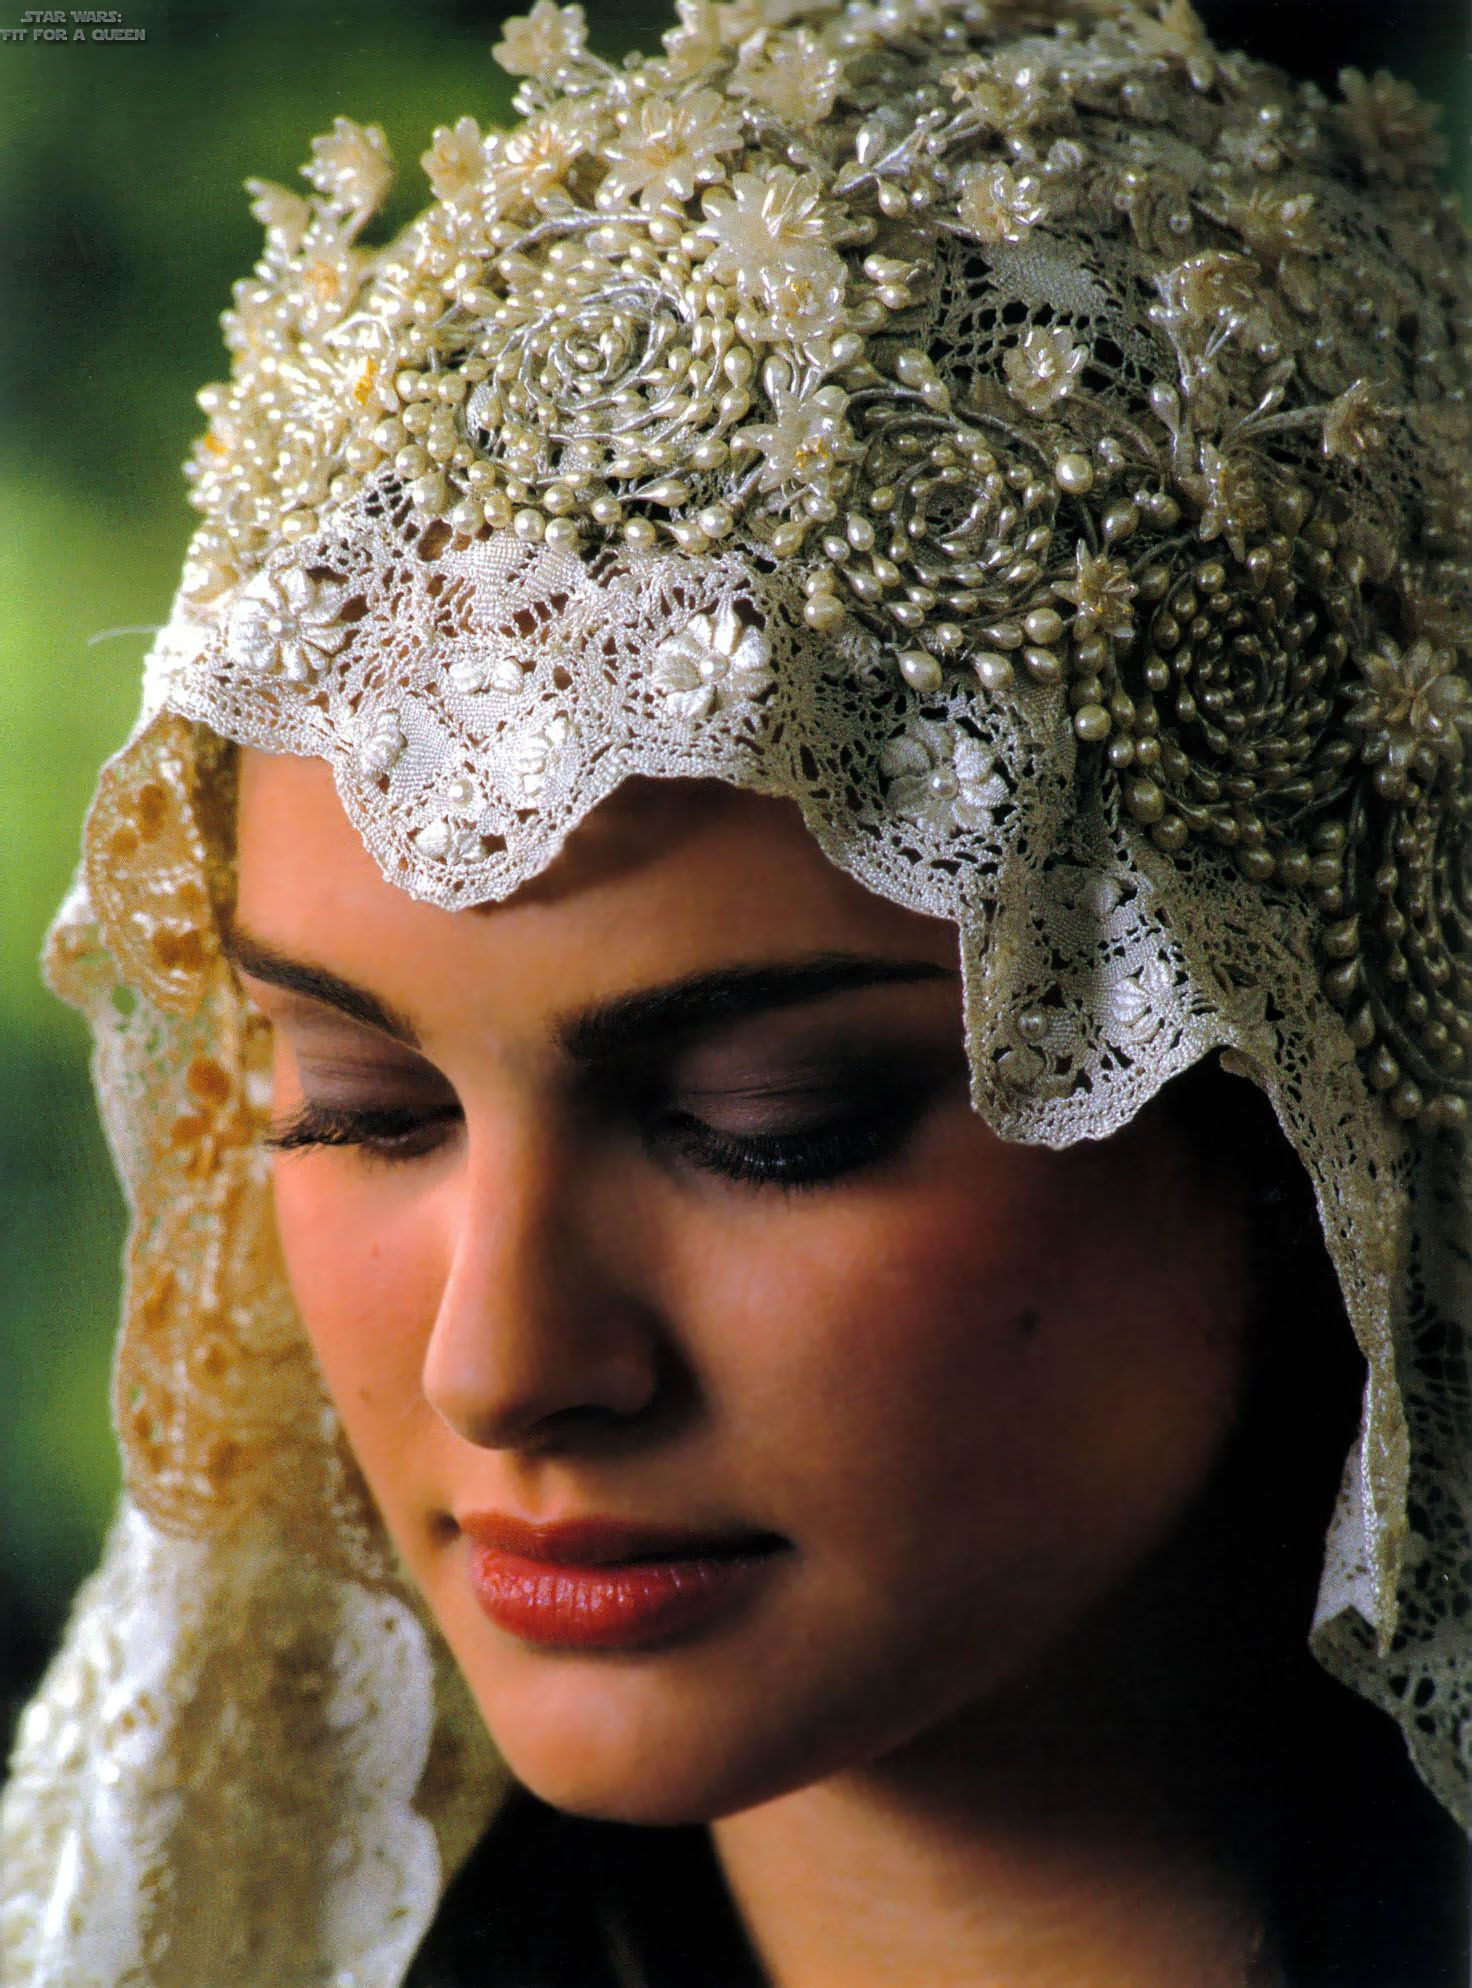 I just love her veil for her wedding dress its beautiful